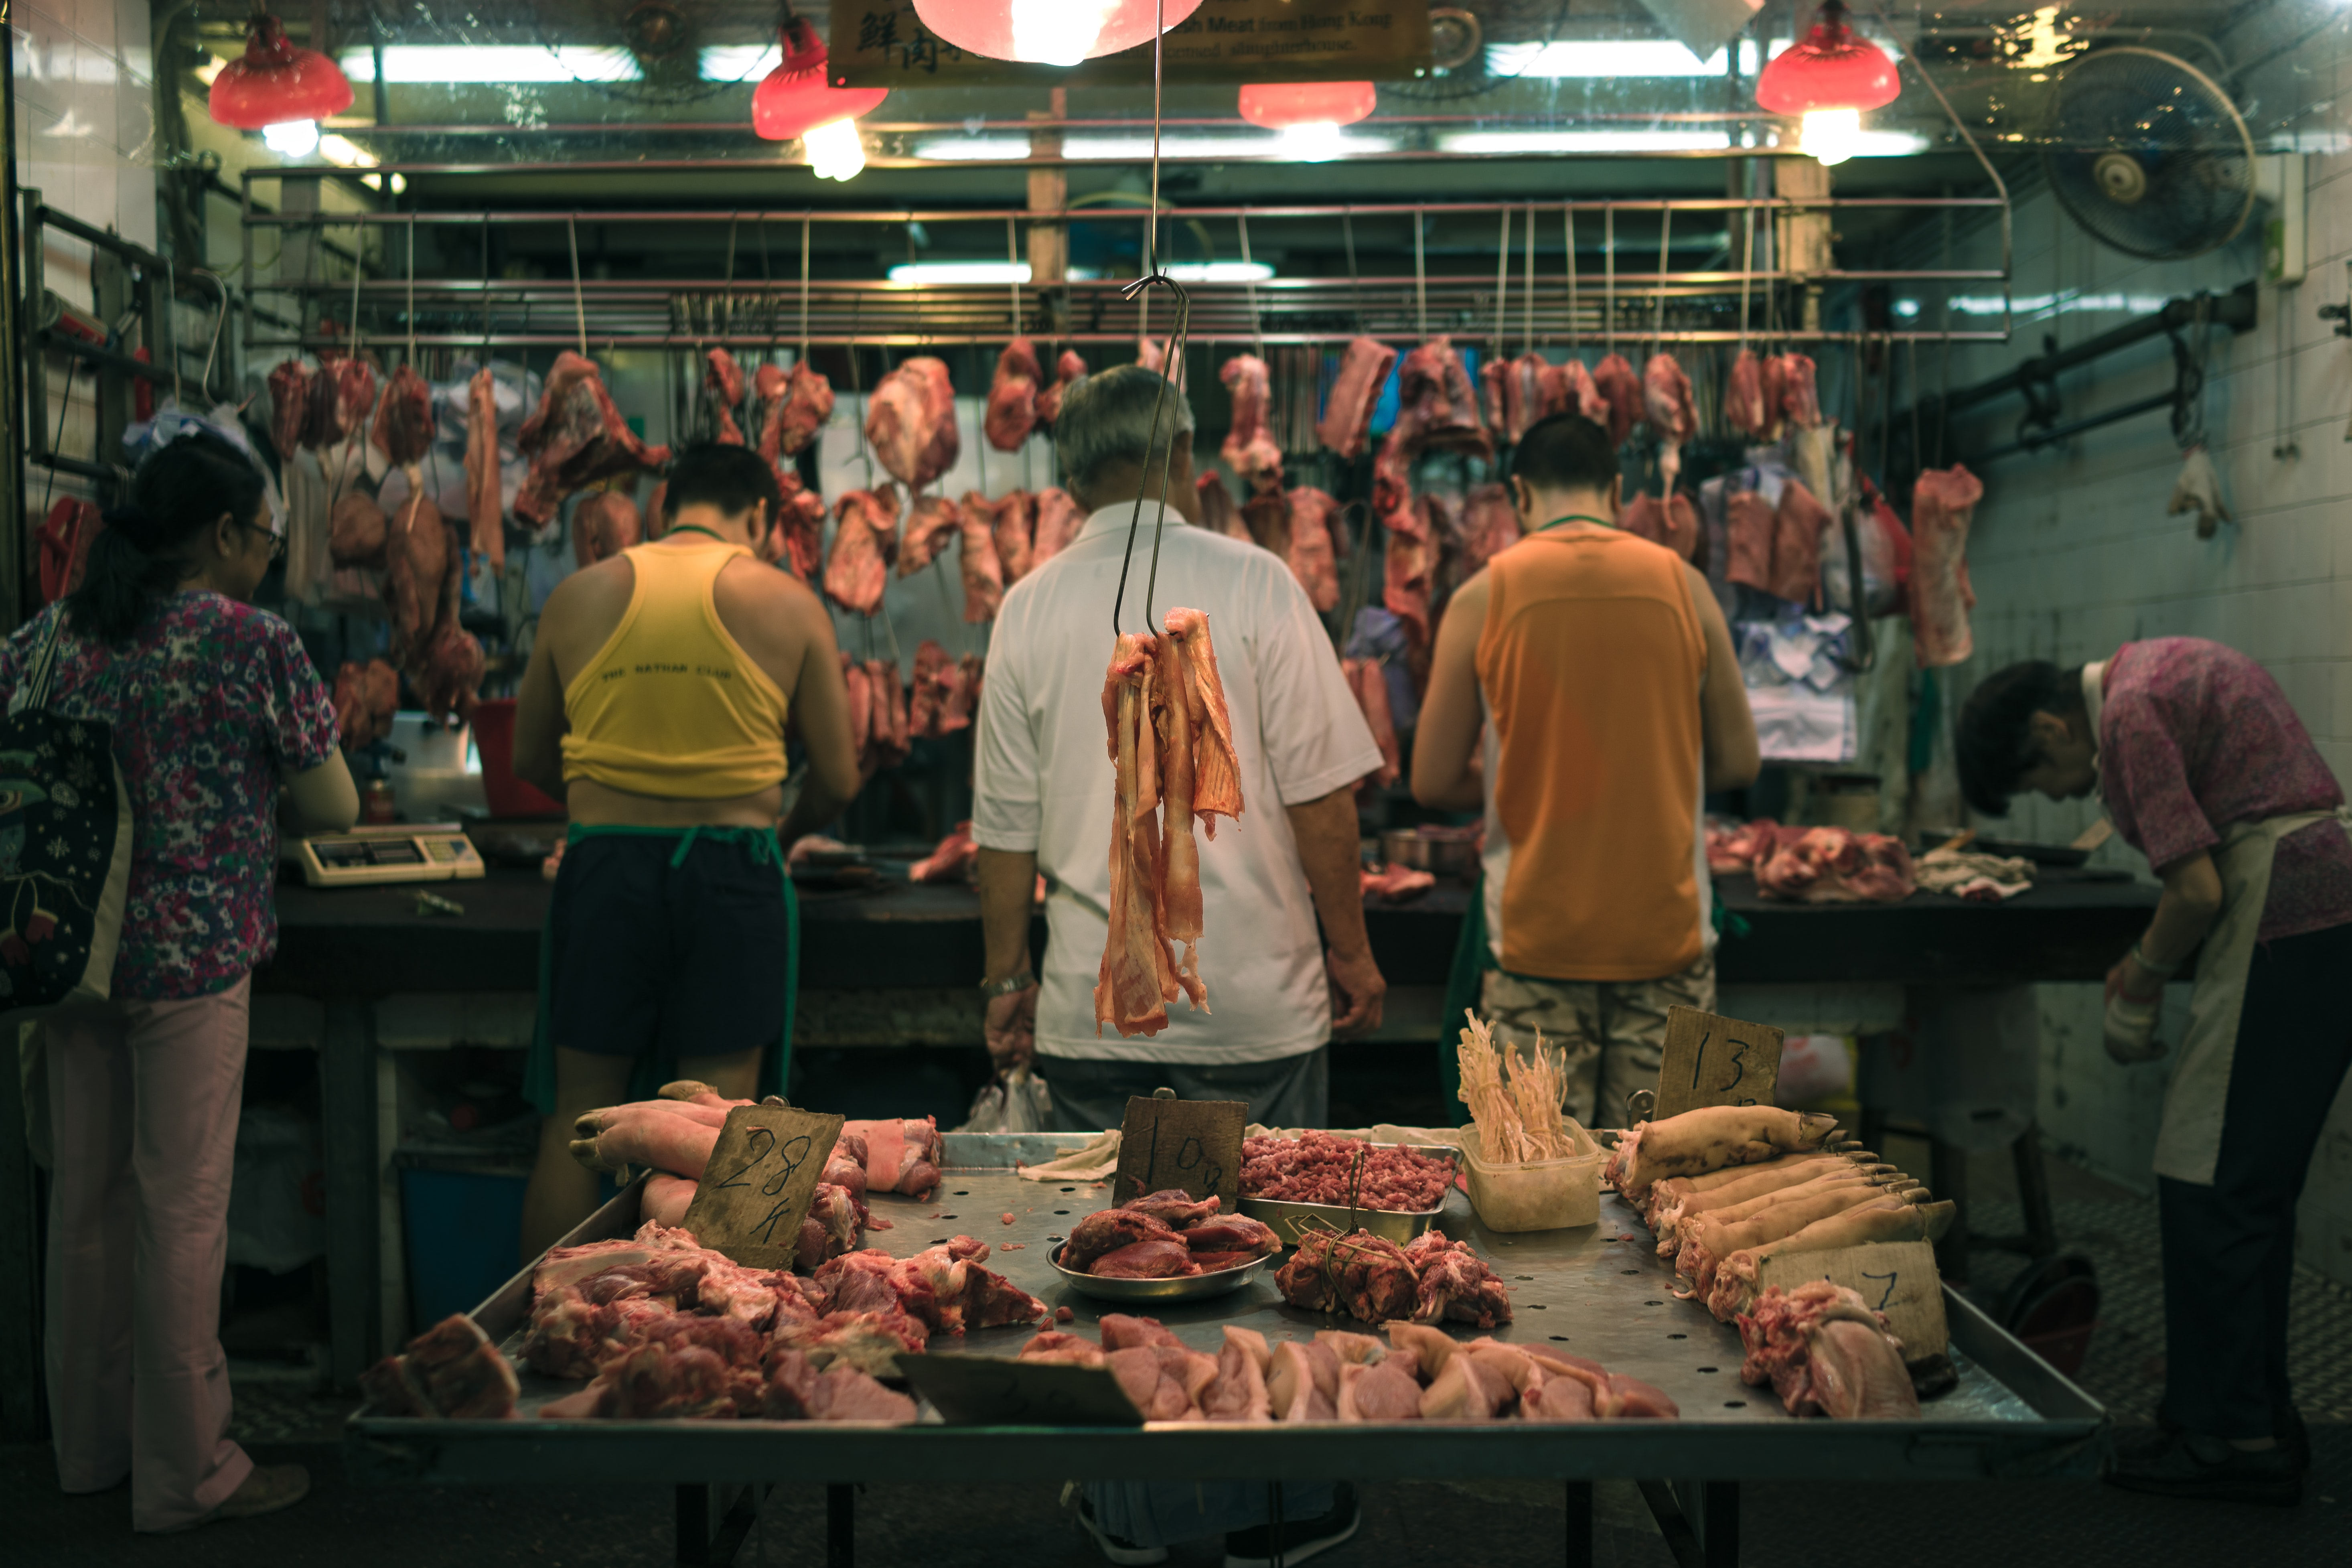 raw meat display behind five person